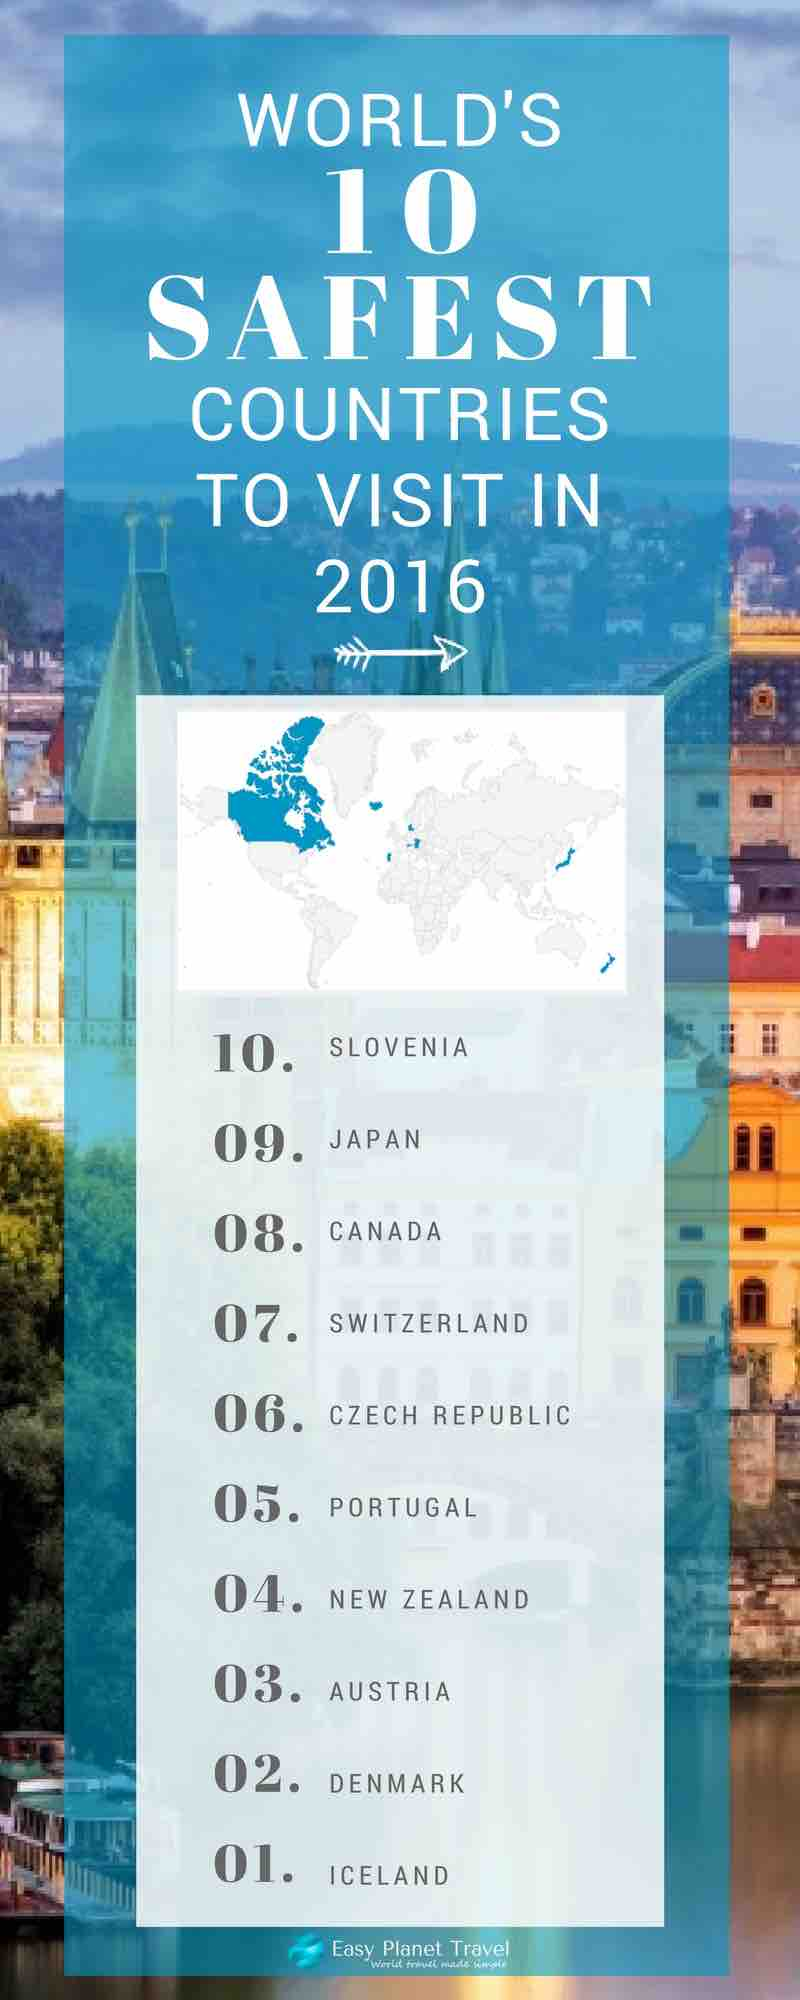 Worldgo To Www Bing Com: World's 10 Safest Countries To Visit In 2016